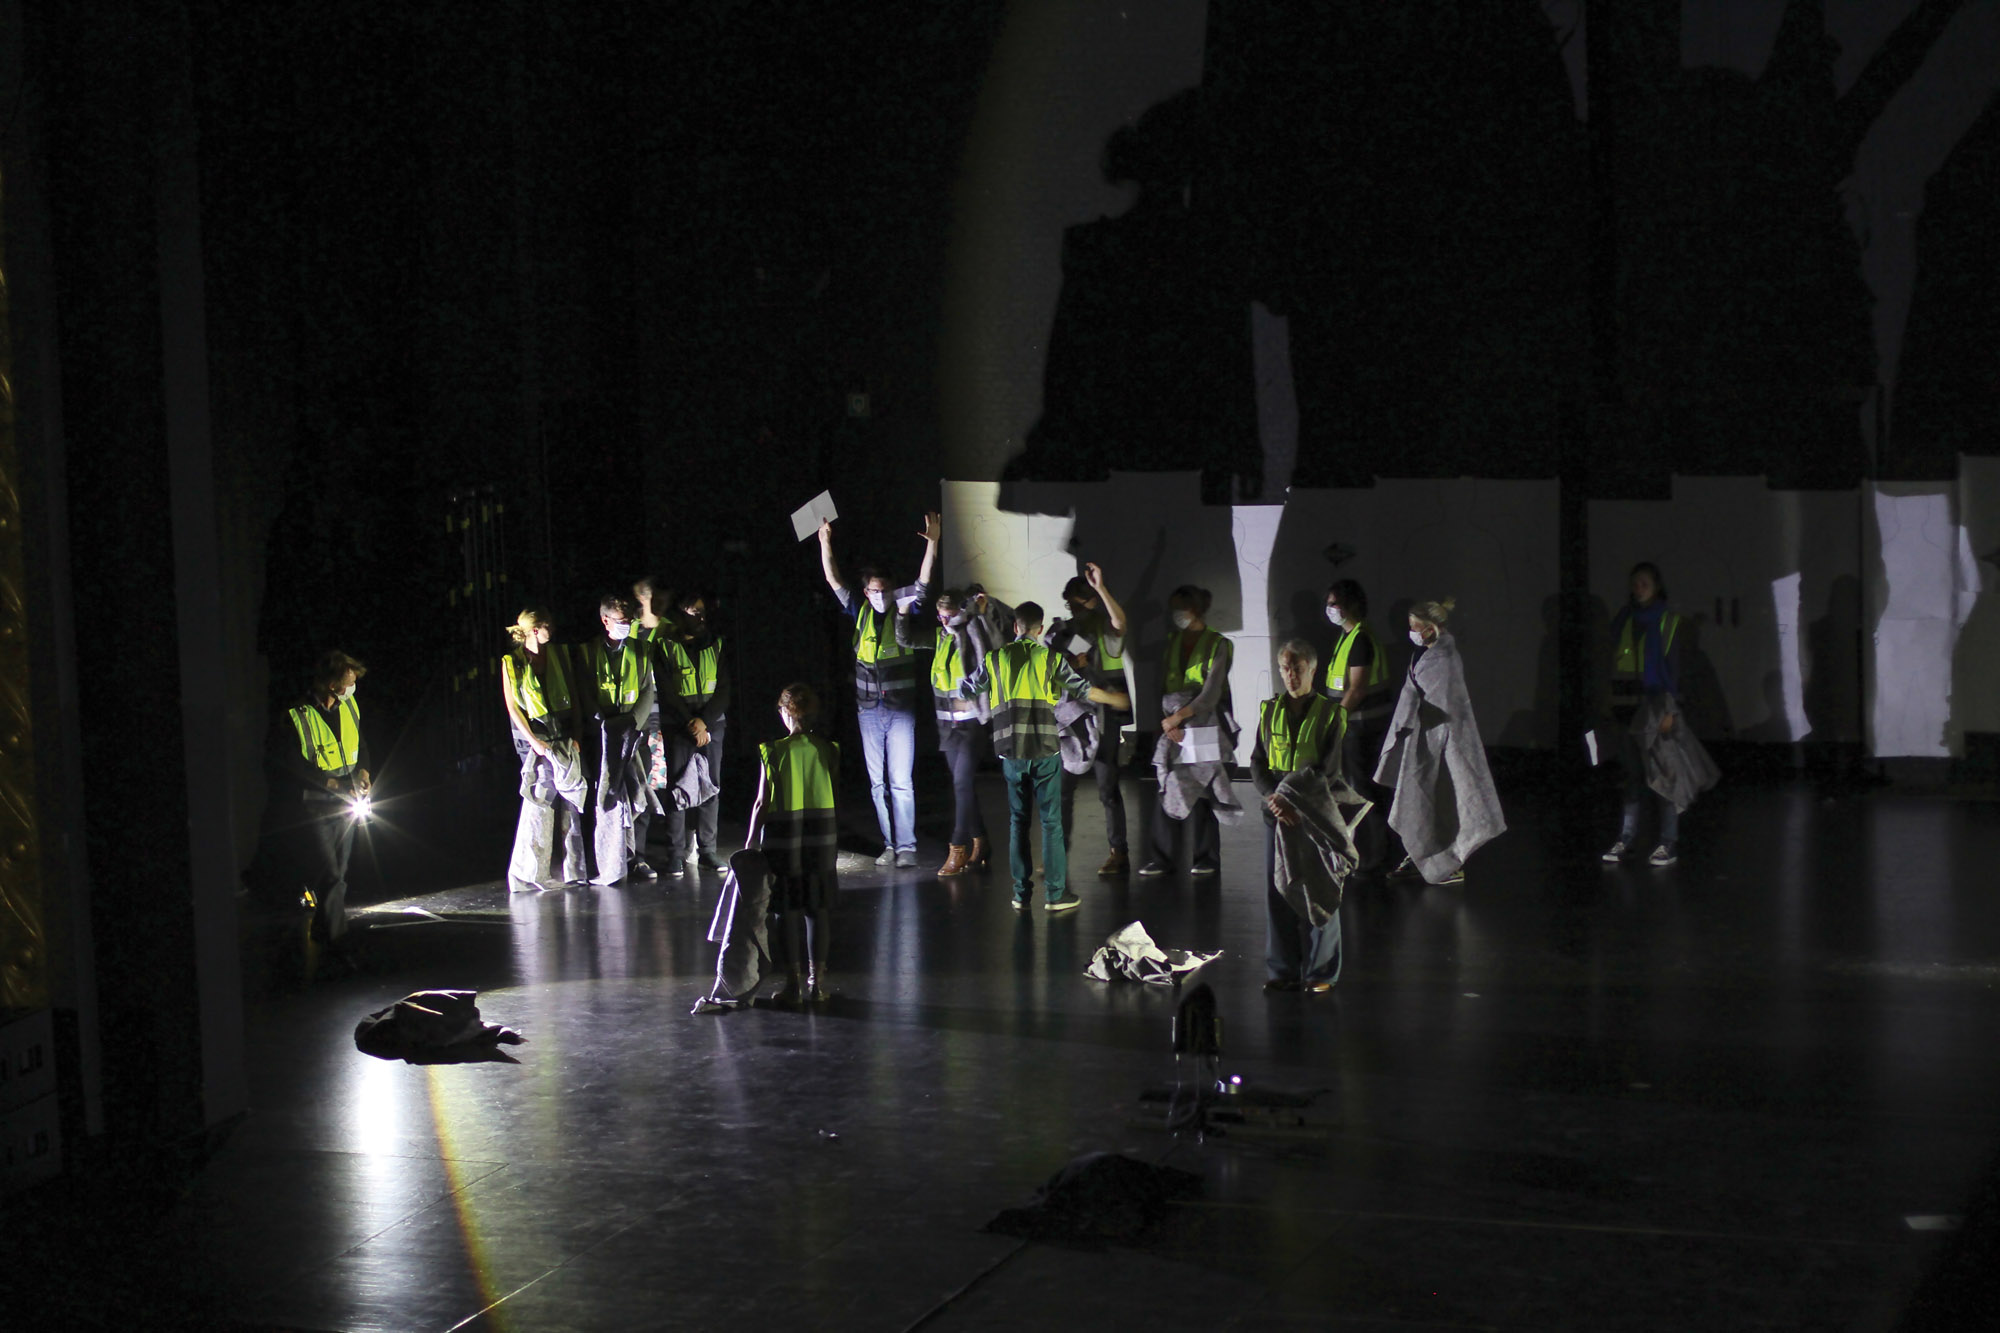 many people on the theater stage in construction vests